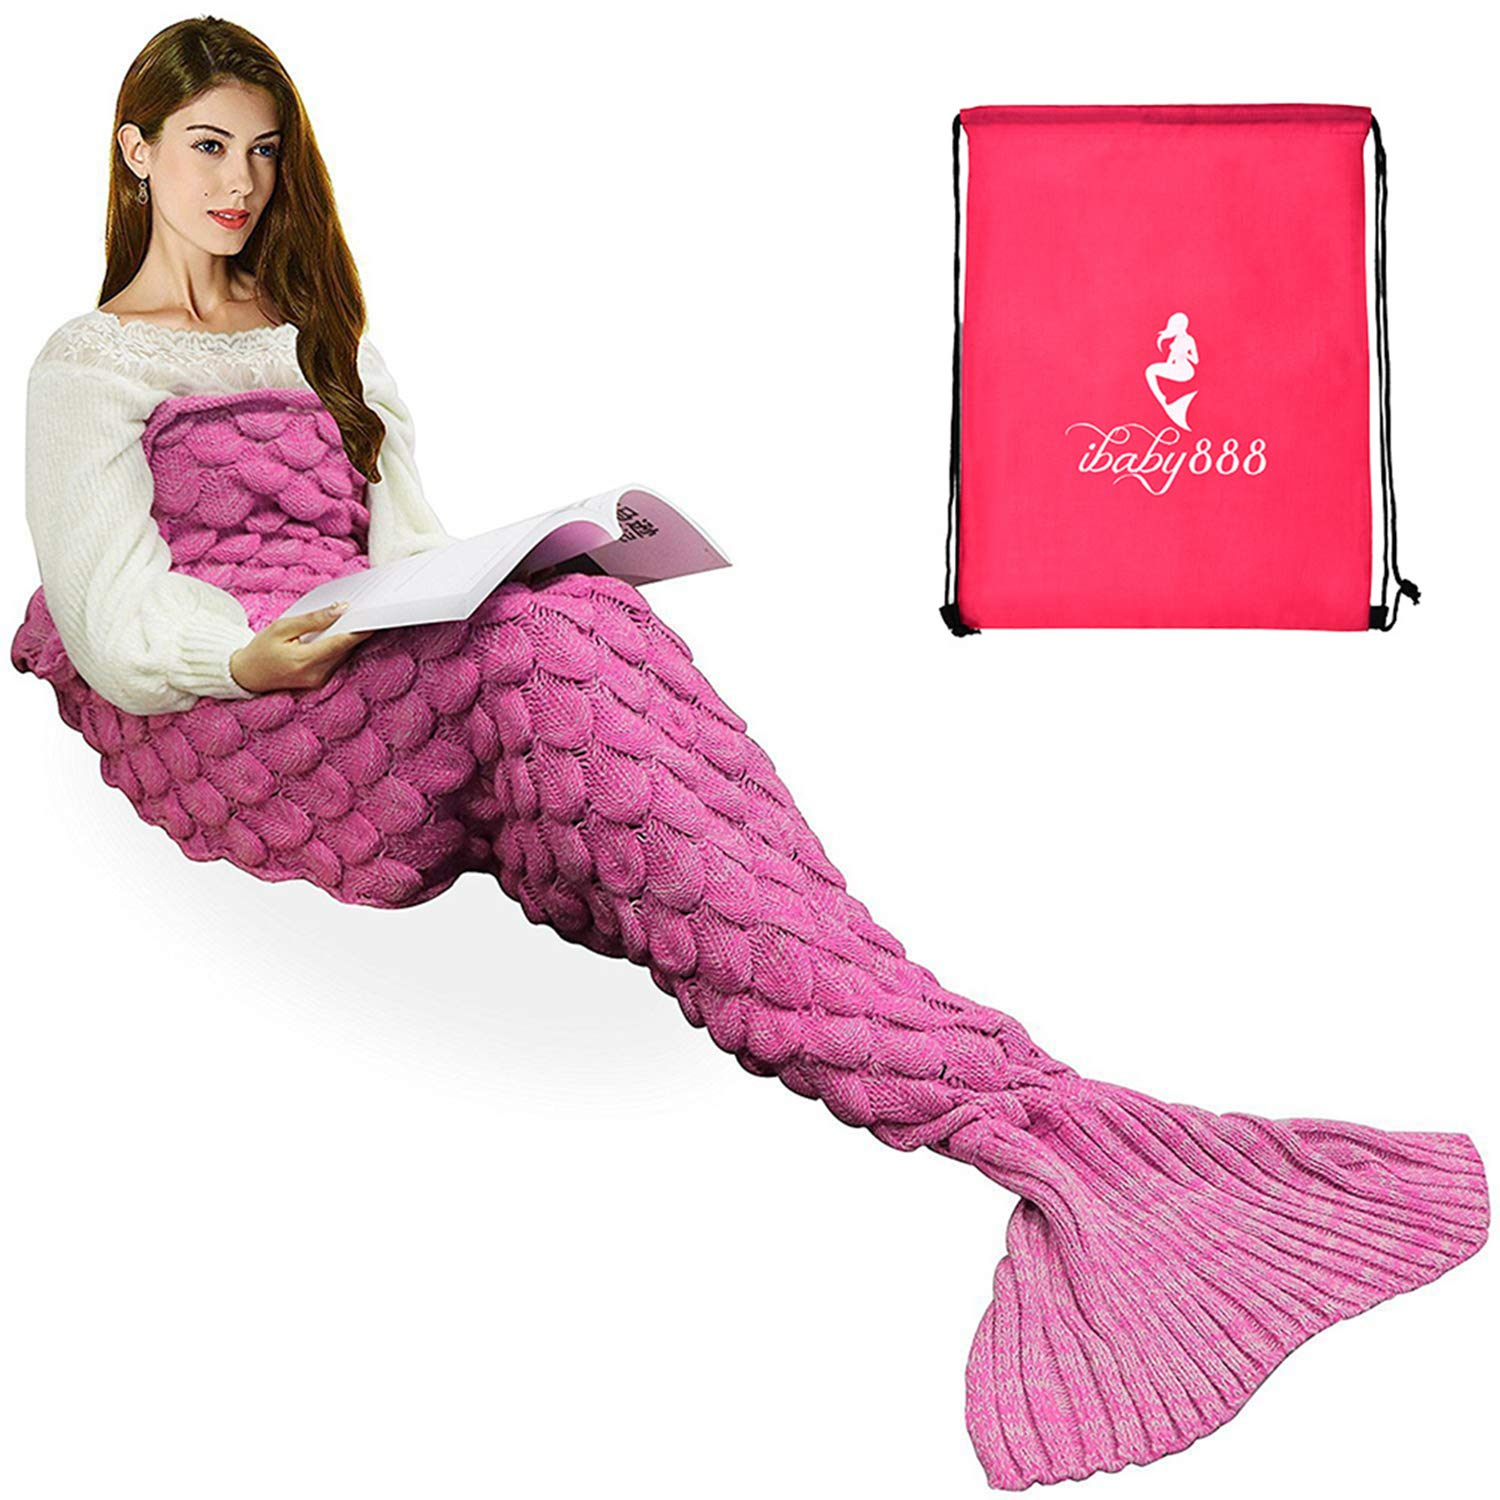 iBaby888 Wearable Mermaid Tail Blanket Crochet, All Seasons Warm Knitted Bed Blankets Sofa Living Room Quilt for Kids and Adults, Fish-Scales Pattern, 70.9'' x 35.5'' (180 x 90cm), Pink